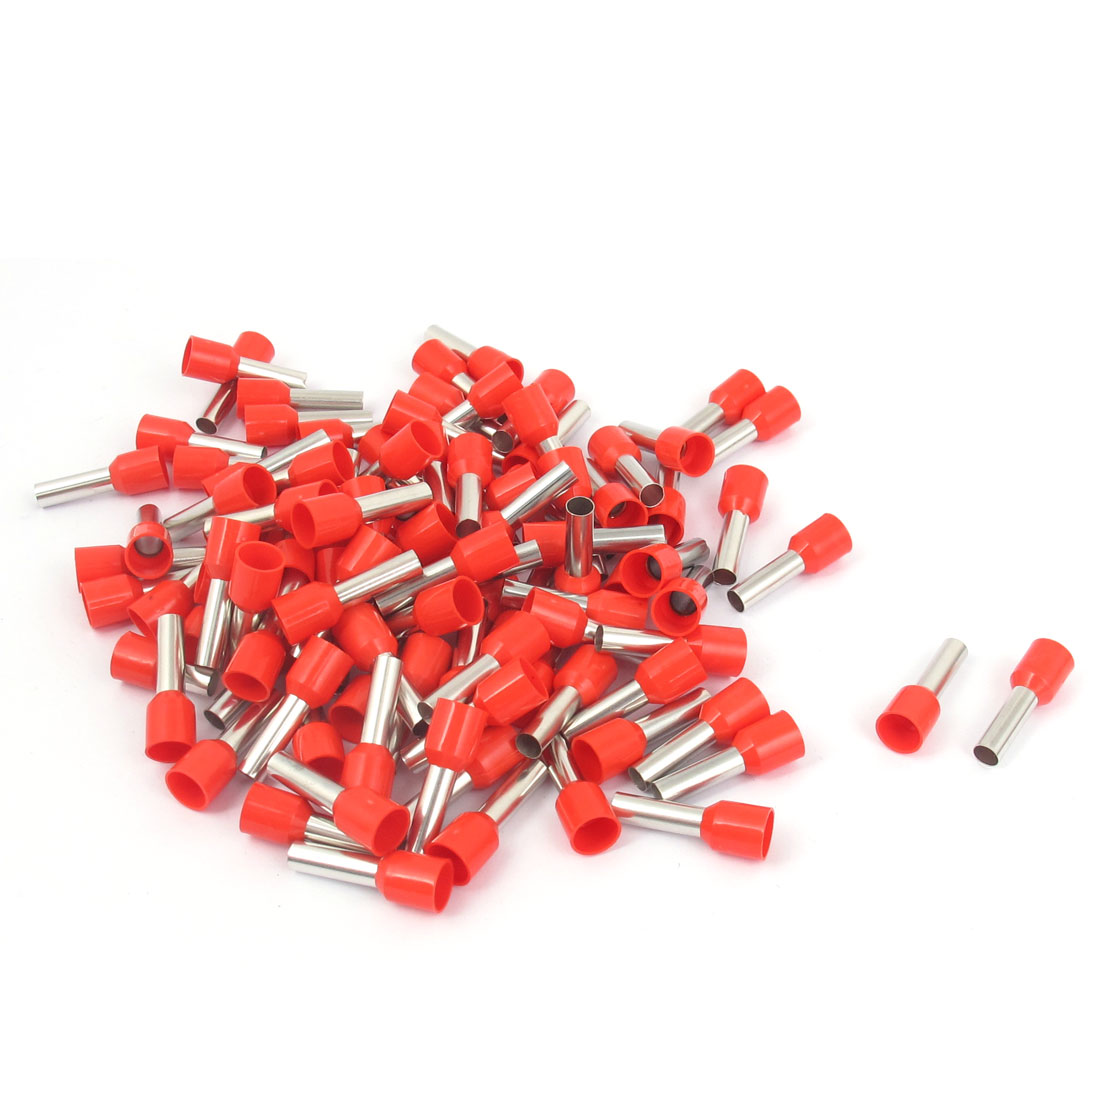 180Pcs E6012 Red Plastic Tube Pre Insulated Bootlace Ferrules Wiring Terminals Connectors